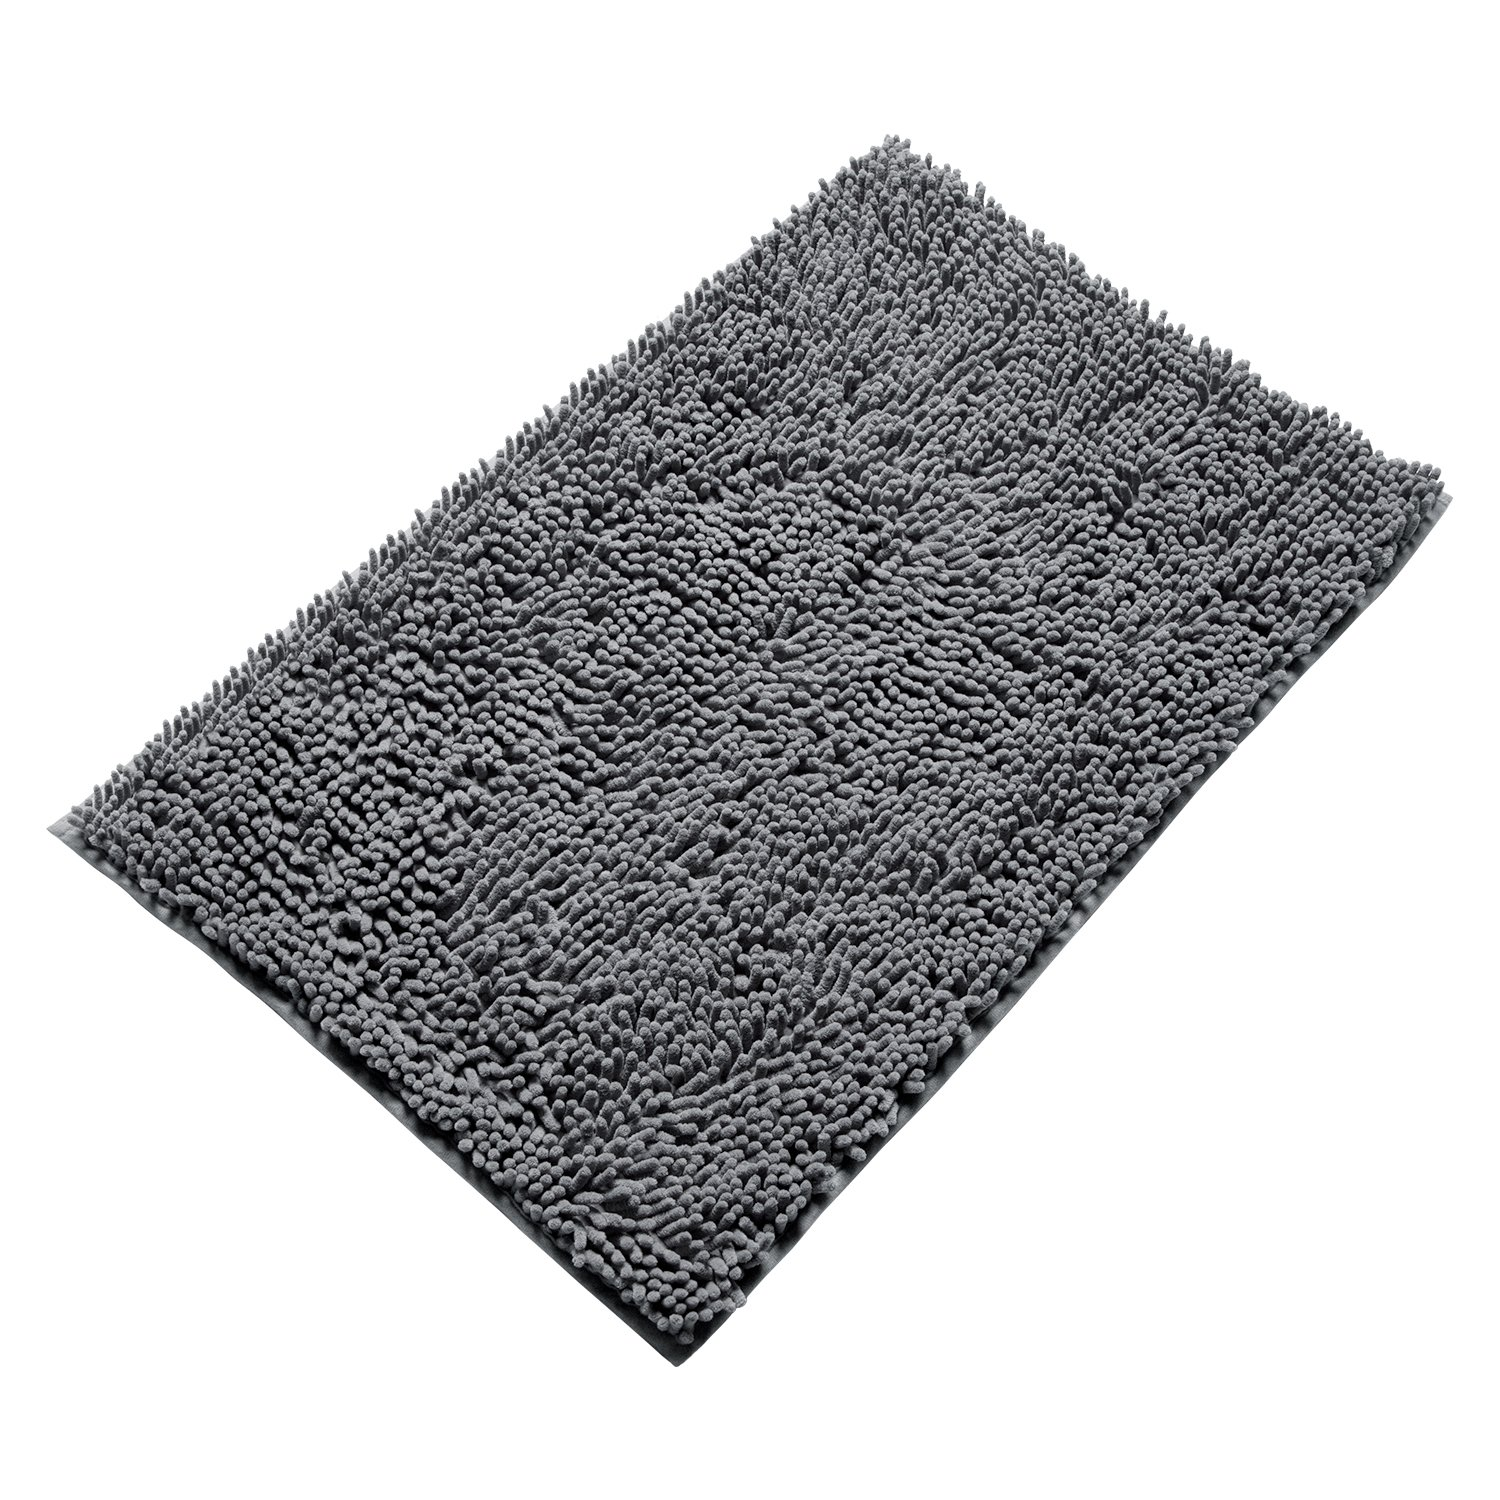 Shop Amazoncom Bath Rugs - Black round bath rug for bathroom decorating ideas